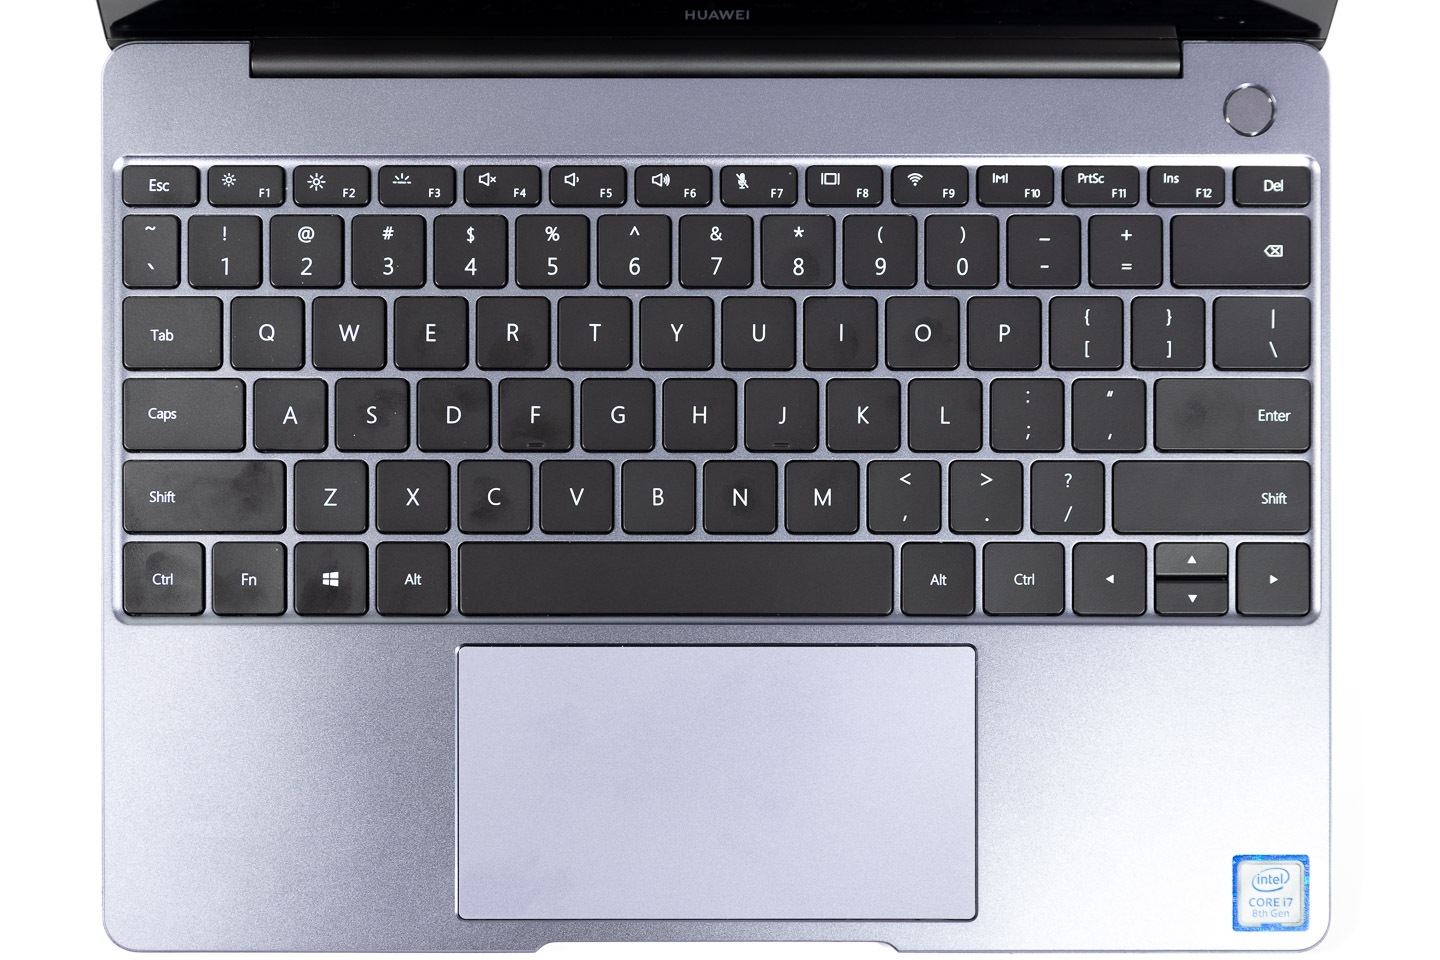 big_huawei-matebook-13-keyboard.jpg